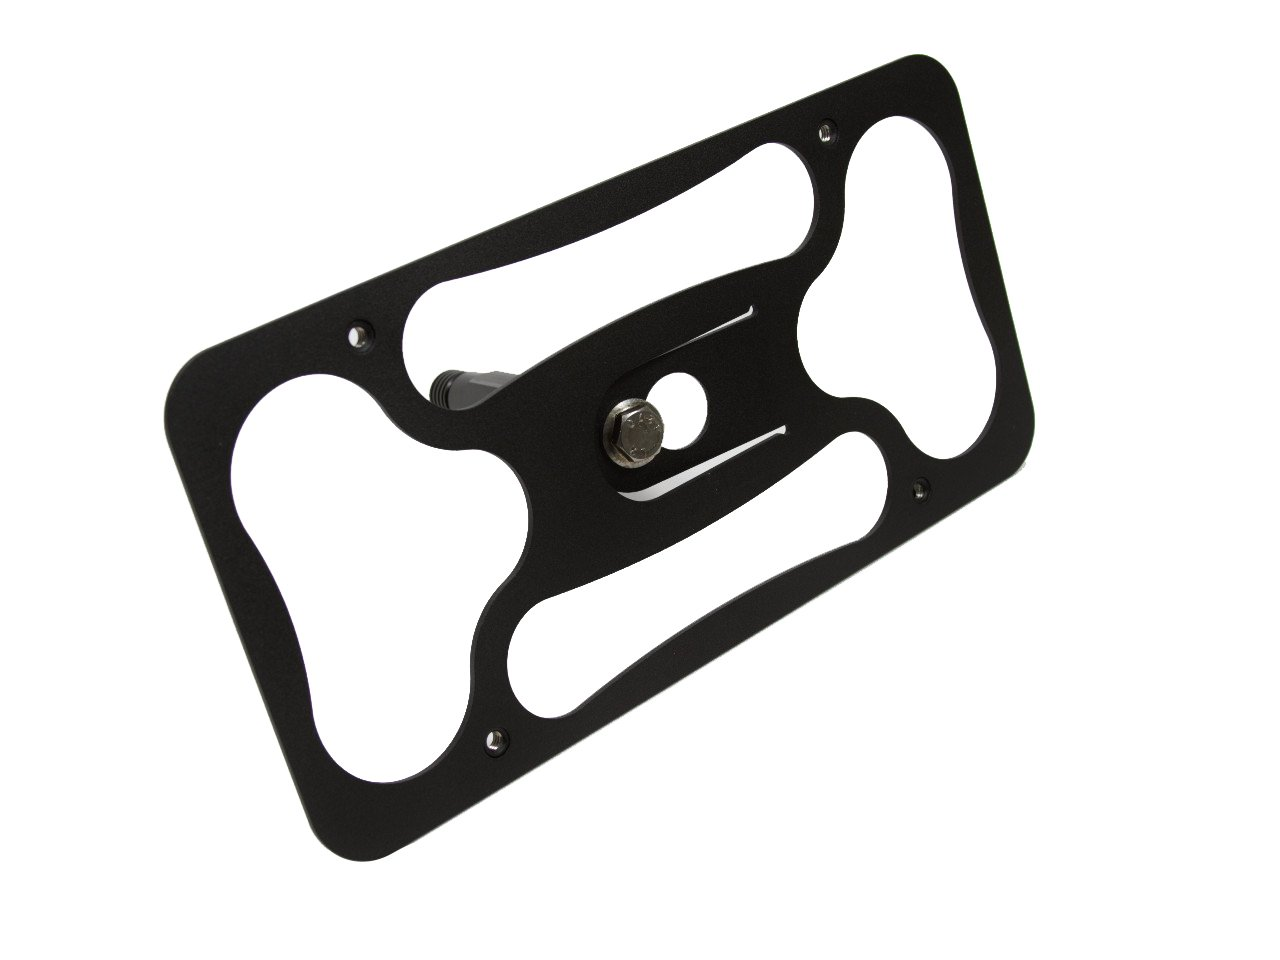 No Drilling Made in USA XV-60 CravenSpeed The Platypus License Plate Mount for Lexus ES Installs in Seconds Made of Stainless Steel /& Aluminum 2013-2015